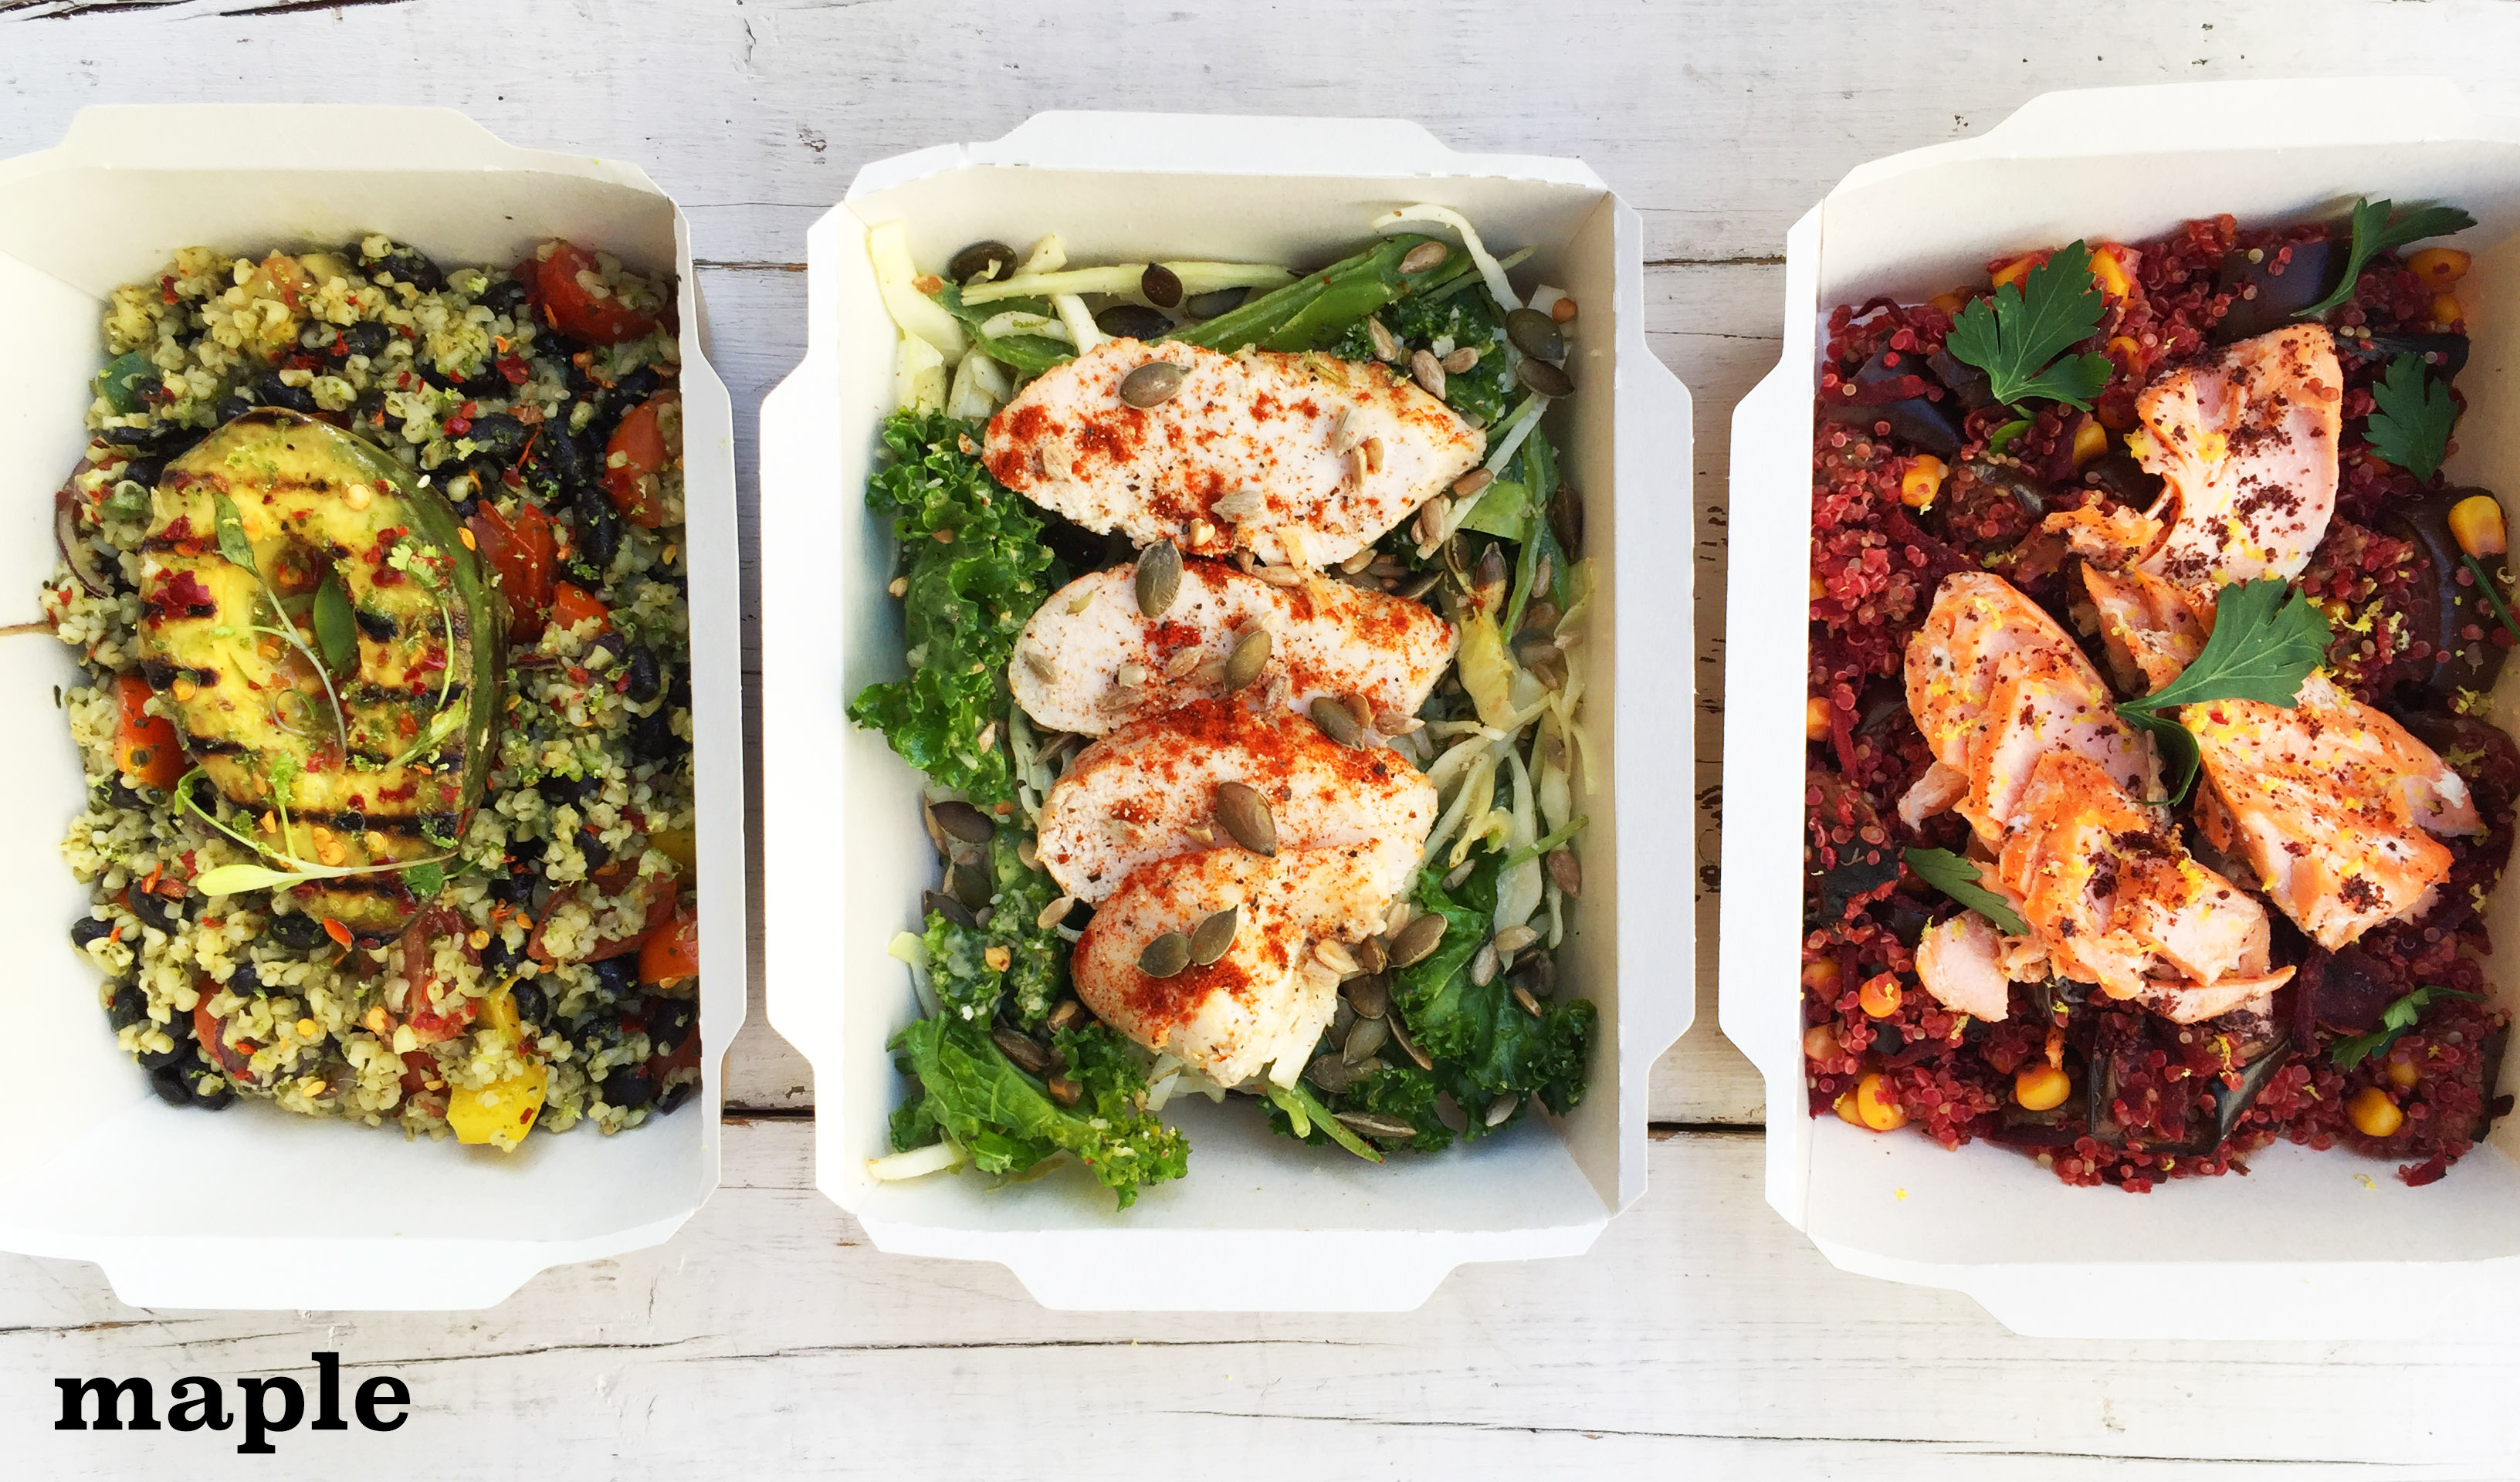 How To Choose Healthy Food Options For Your Office Lunch.